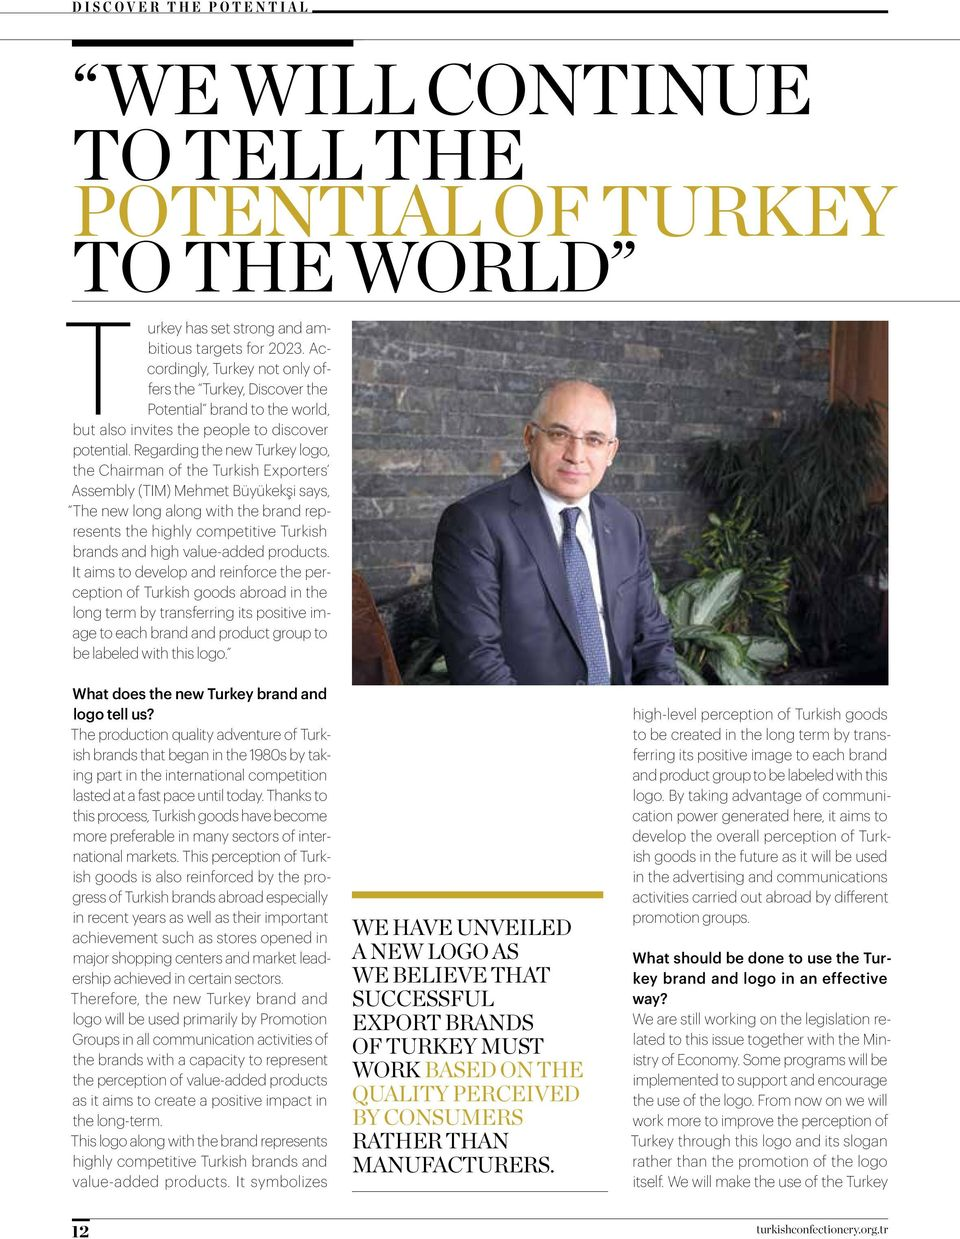 Regarding the new Turkey logo, the Chairman of the Turkish Exporters Assembly (TIM) Mehmet Büyükekşi says, The new long along with the brand represents the highly competitive Turkish brands and high